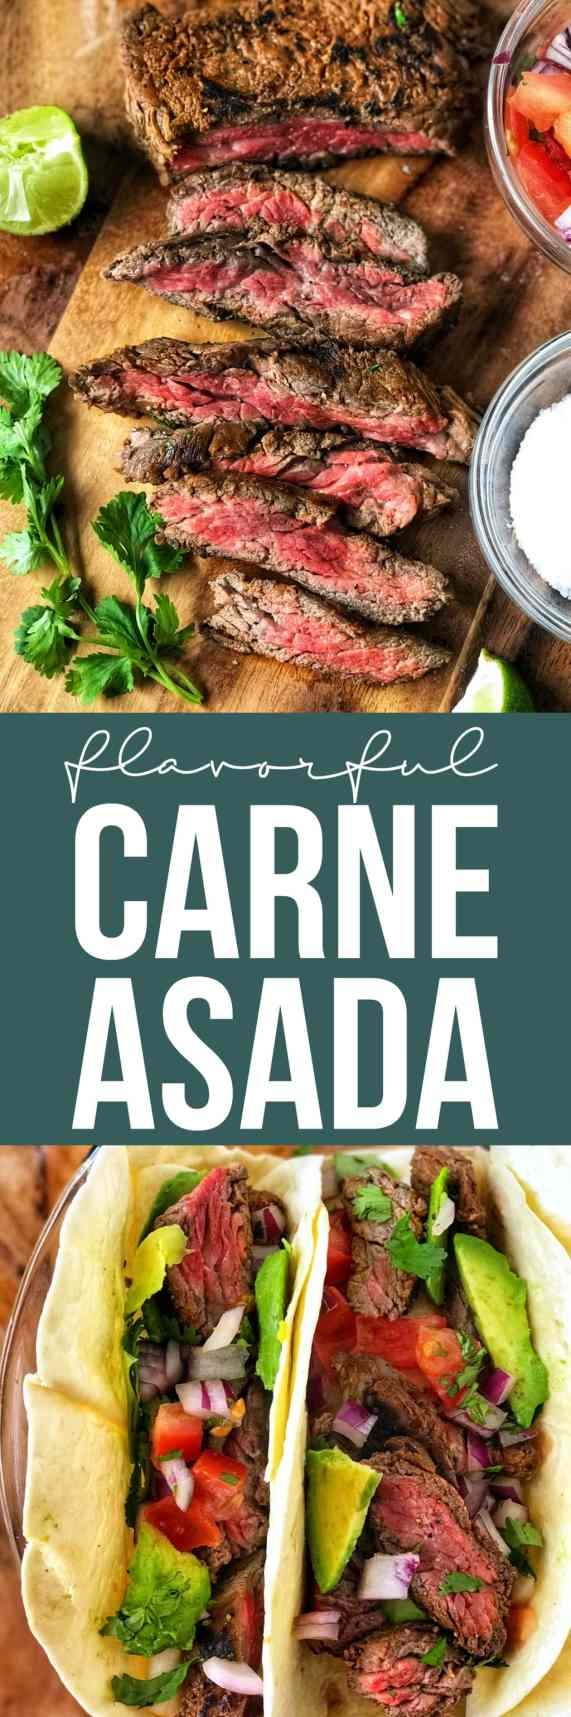 Carne Asada packs a punch with a marinade full of bright citrus, fresh chilies, and garlic. This marinade not only gives the skirt steak a powerful flavor, but makes it buttery and tender! Great for Taco Tuesday!